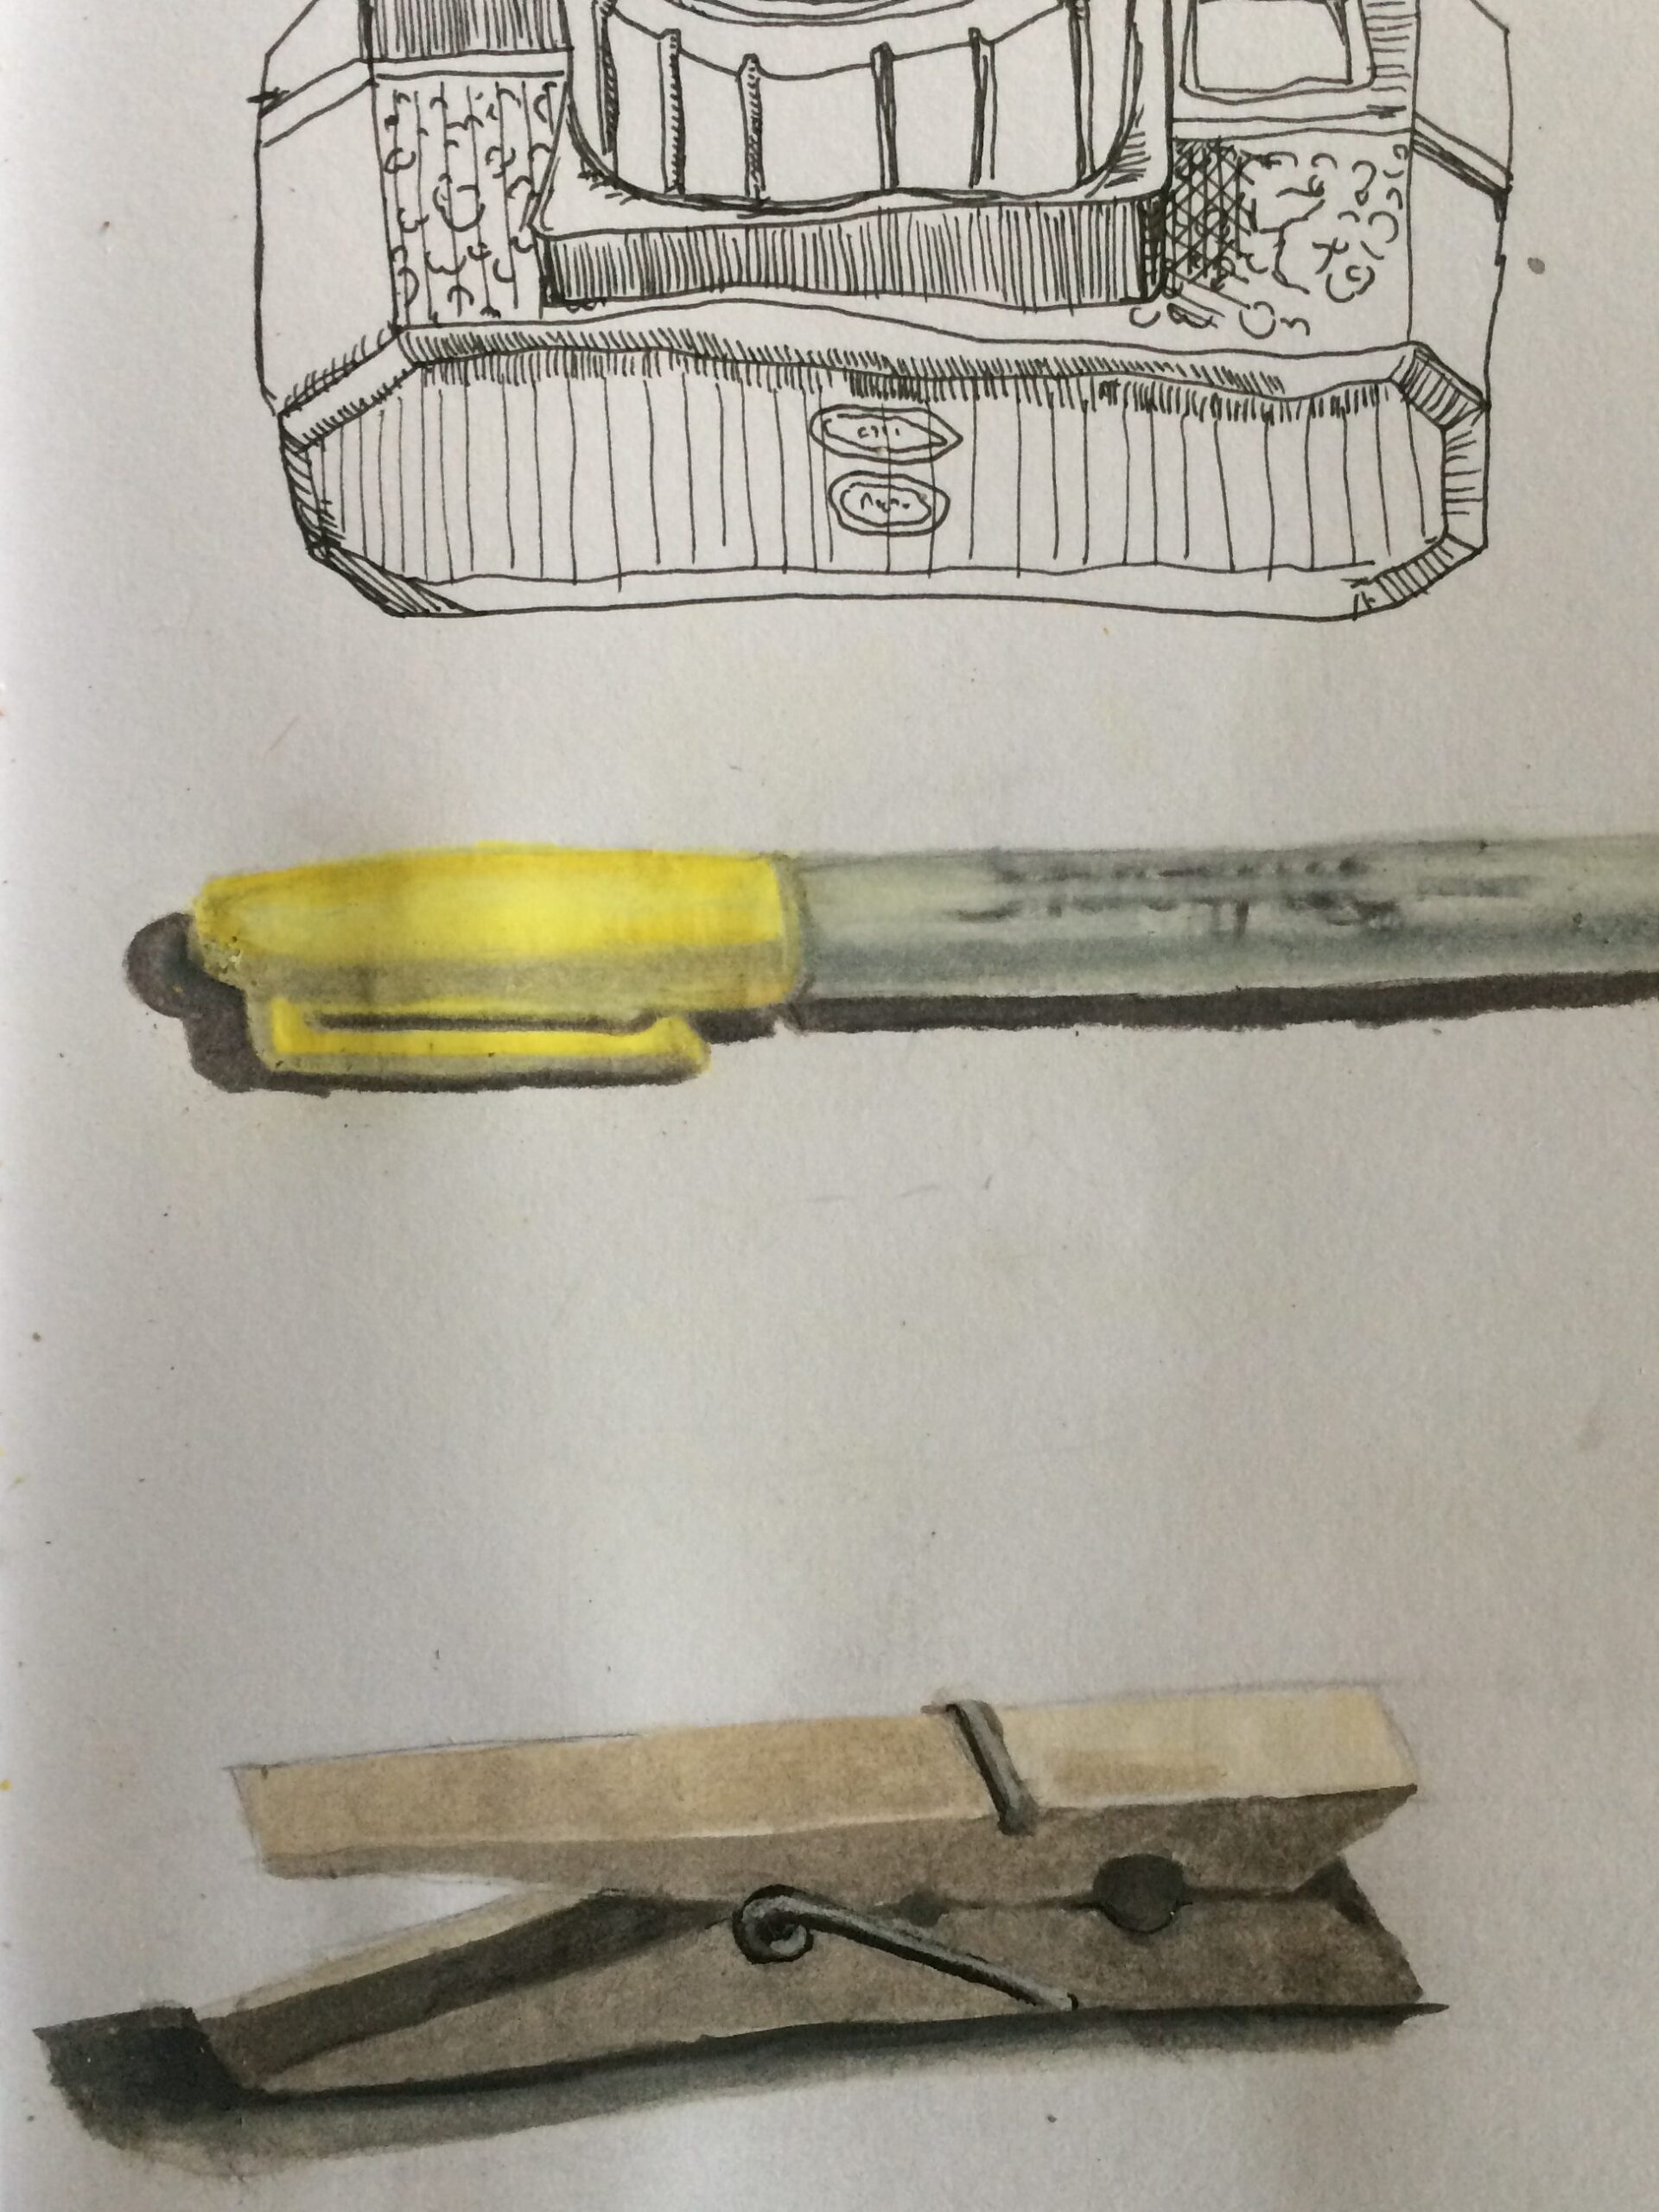 Object sketch by Zip 2020 student